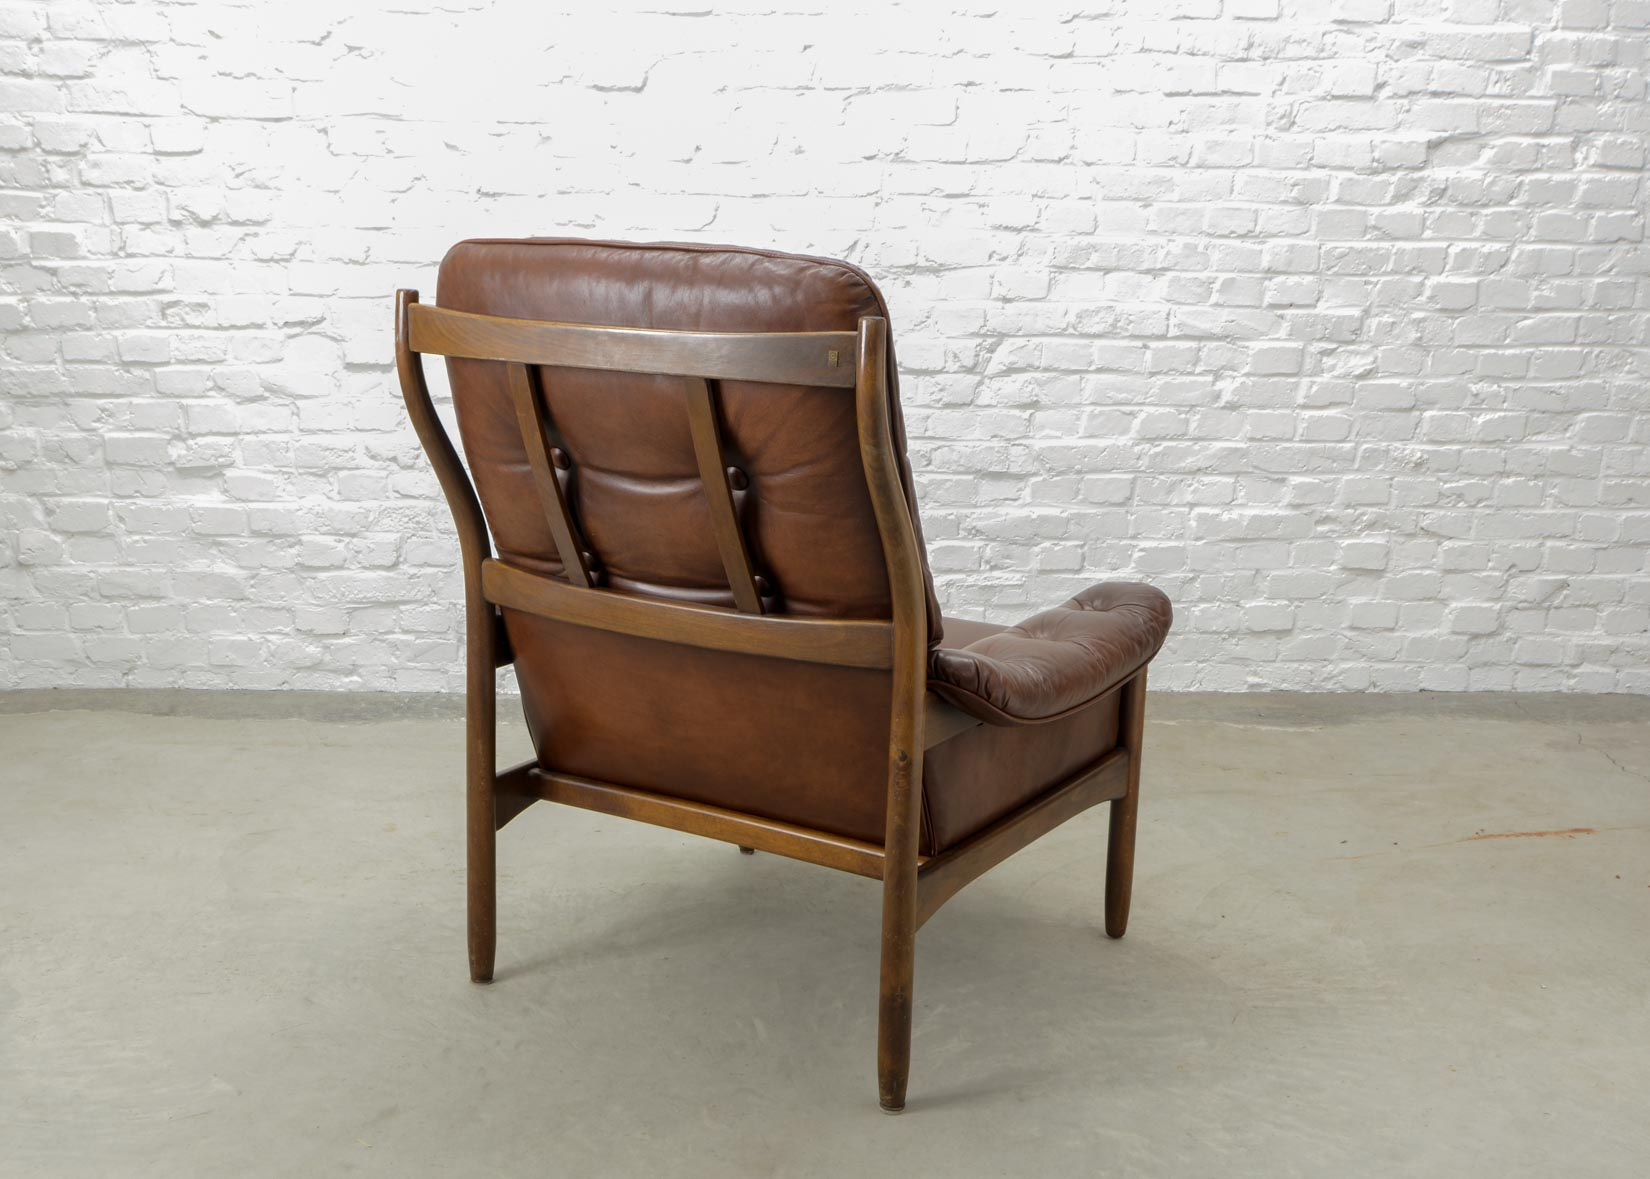 Scandinavian Möbel Mid Century Scandinavian Design Chestnut Leather Lounge Chair By G